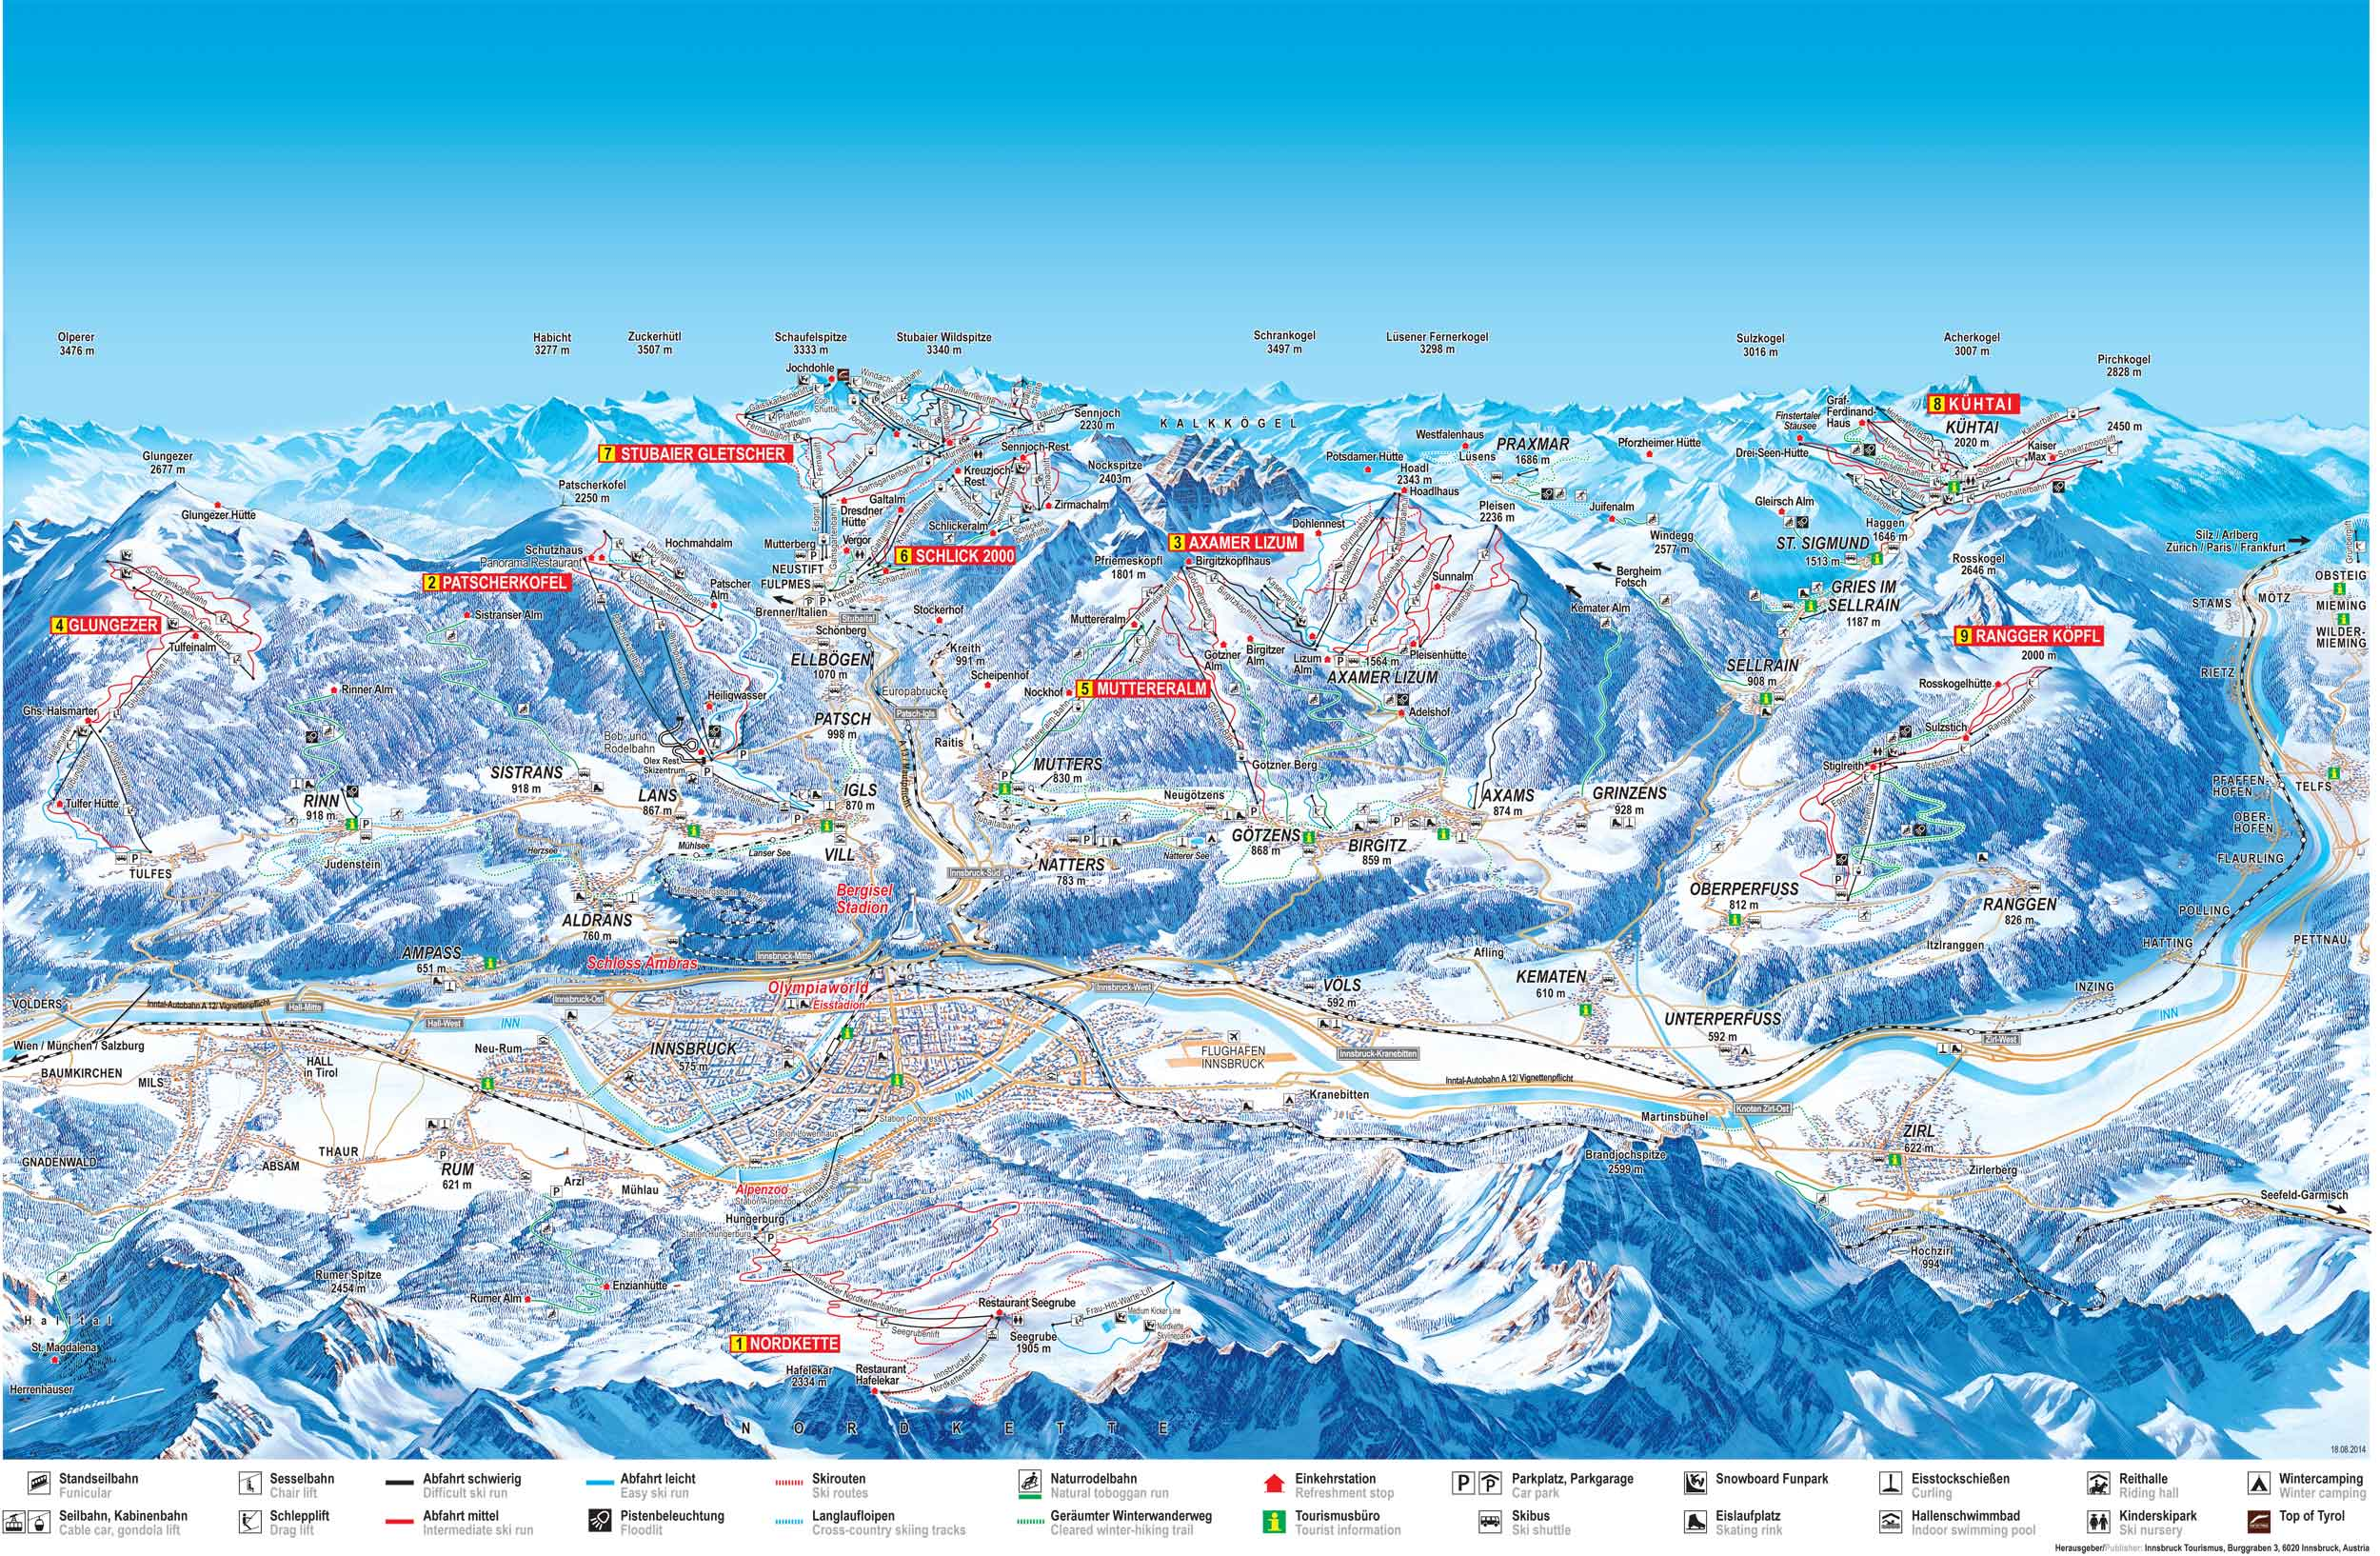 map of utah ski areas with Olympia Skiworld Innsbruck on Best Utah Ski Snowboard Resorts moreover Olympia Skiworld Innsbruck together with New H shire State Parks Map also Ski Area Summer Use Bill Passes Congress Heads To Obama For Signature also Piece By Piece Tour 2015 Salt Lake City Ut Usana A T18224.